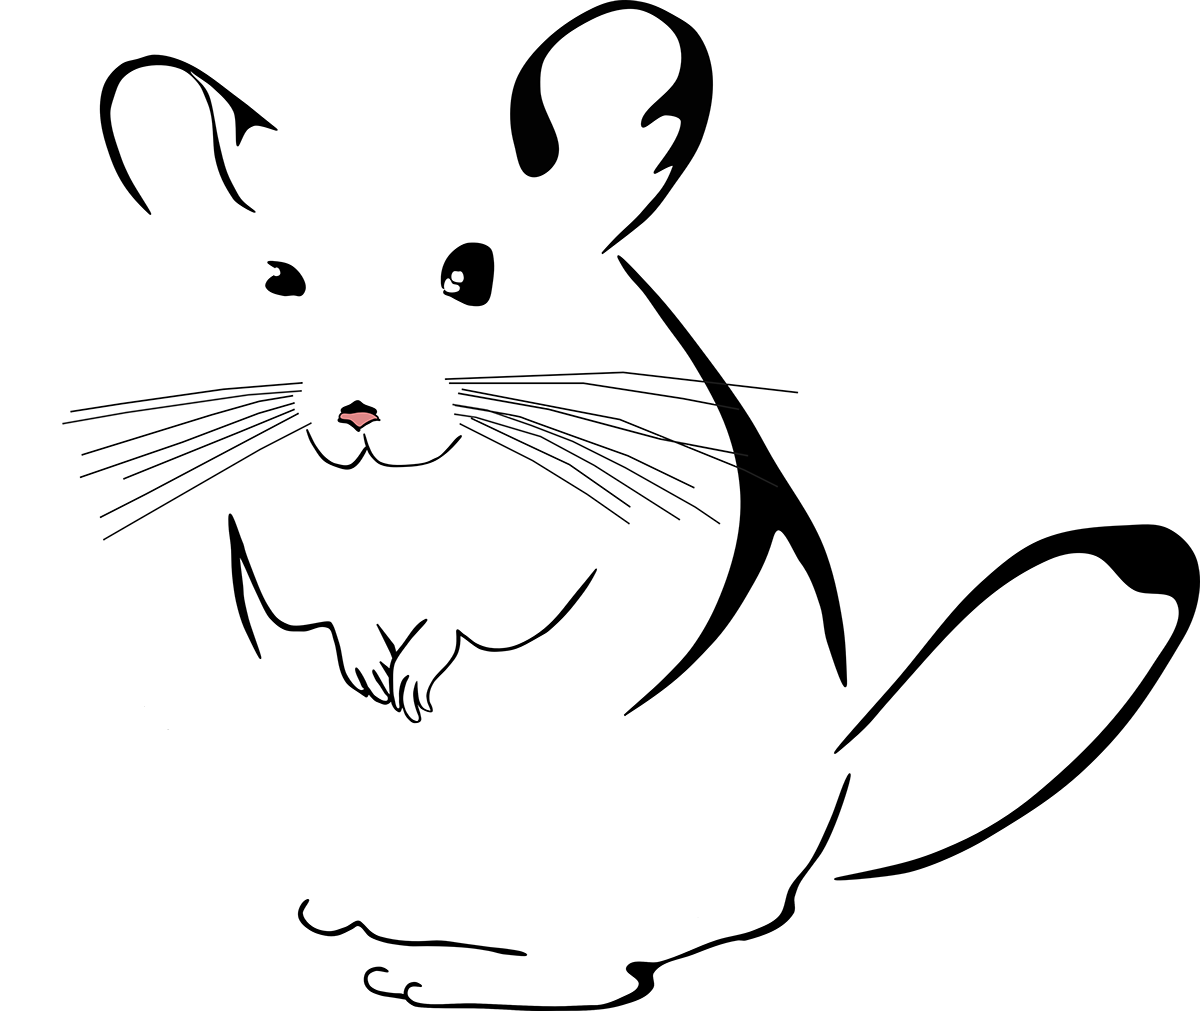 chinchilla-stuff-logo-large